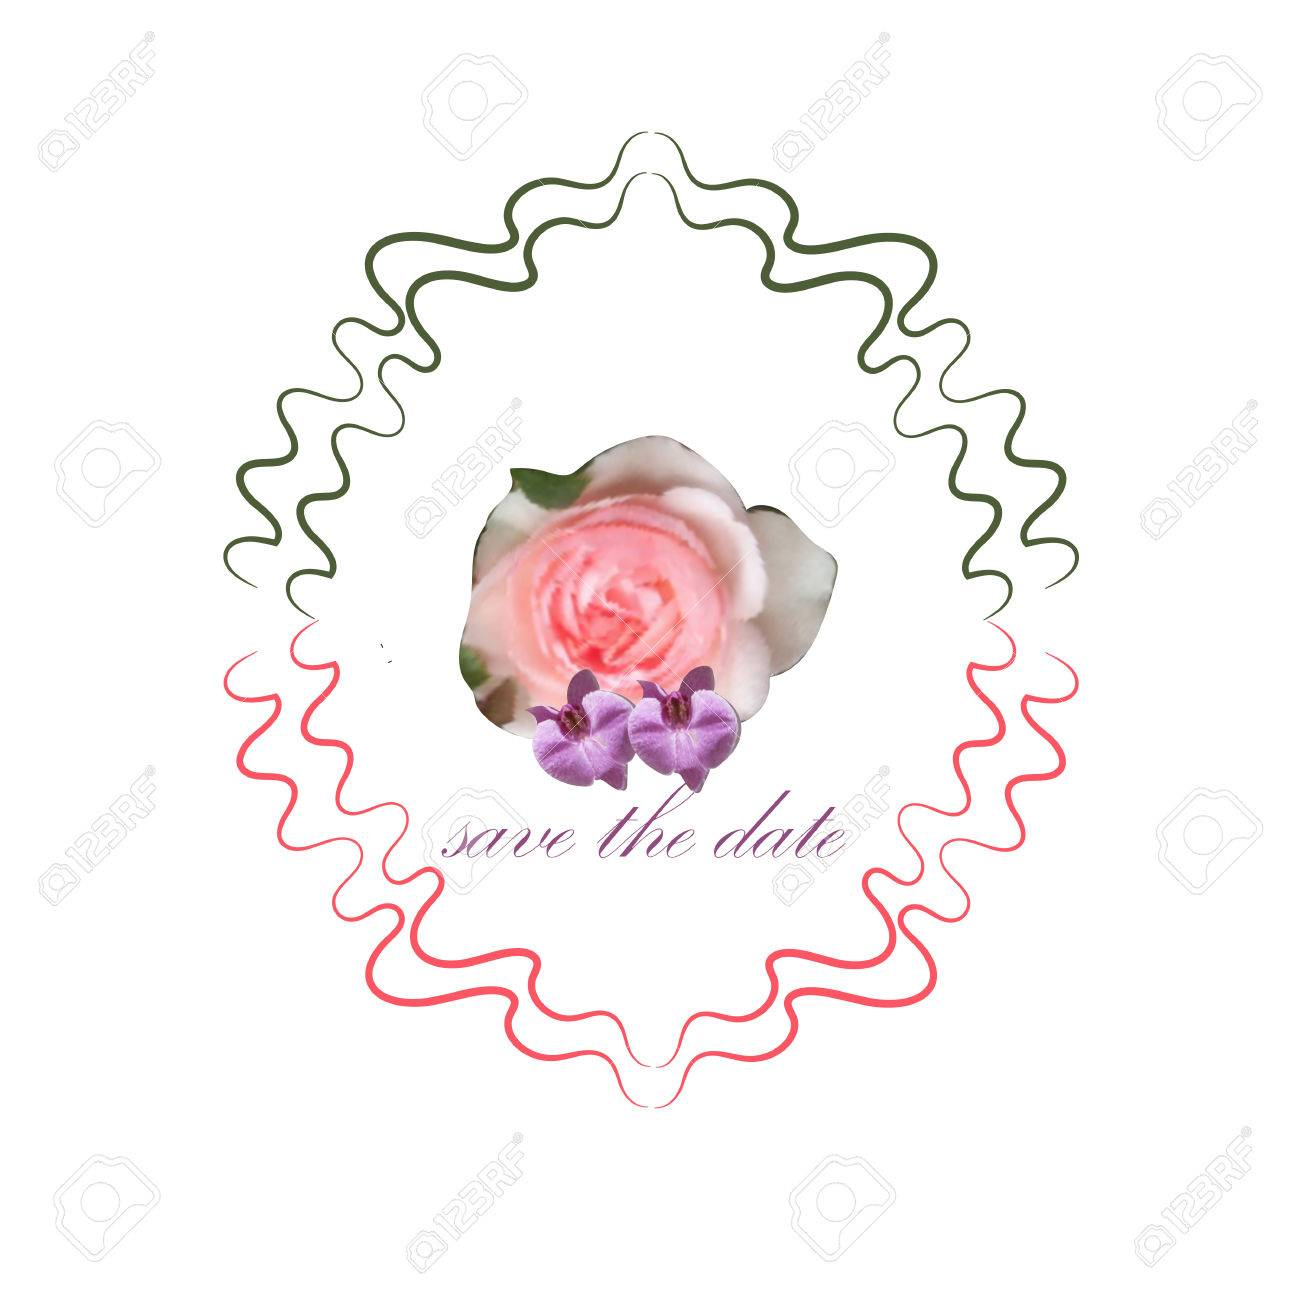 Rose In Bright Colors In Cartoon Style For Wedding Card Stock Photo ...